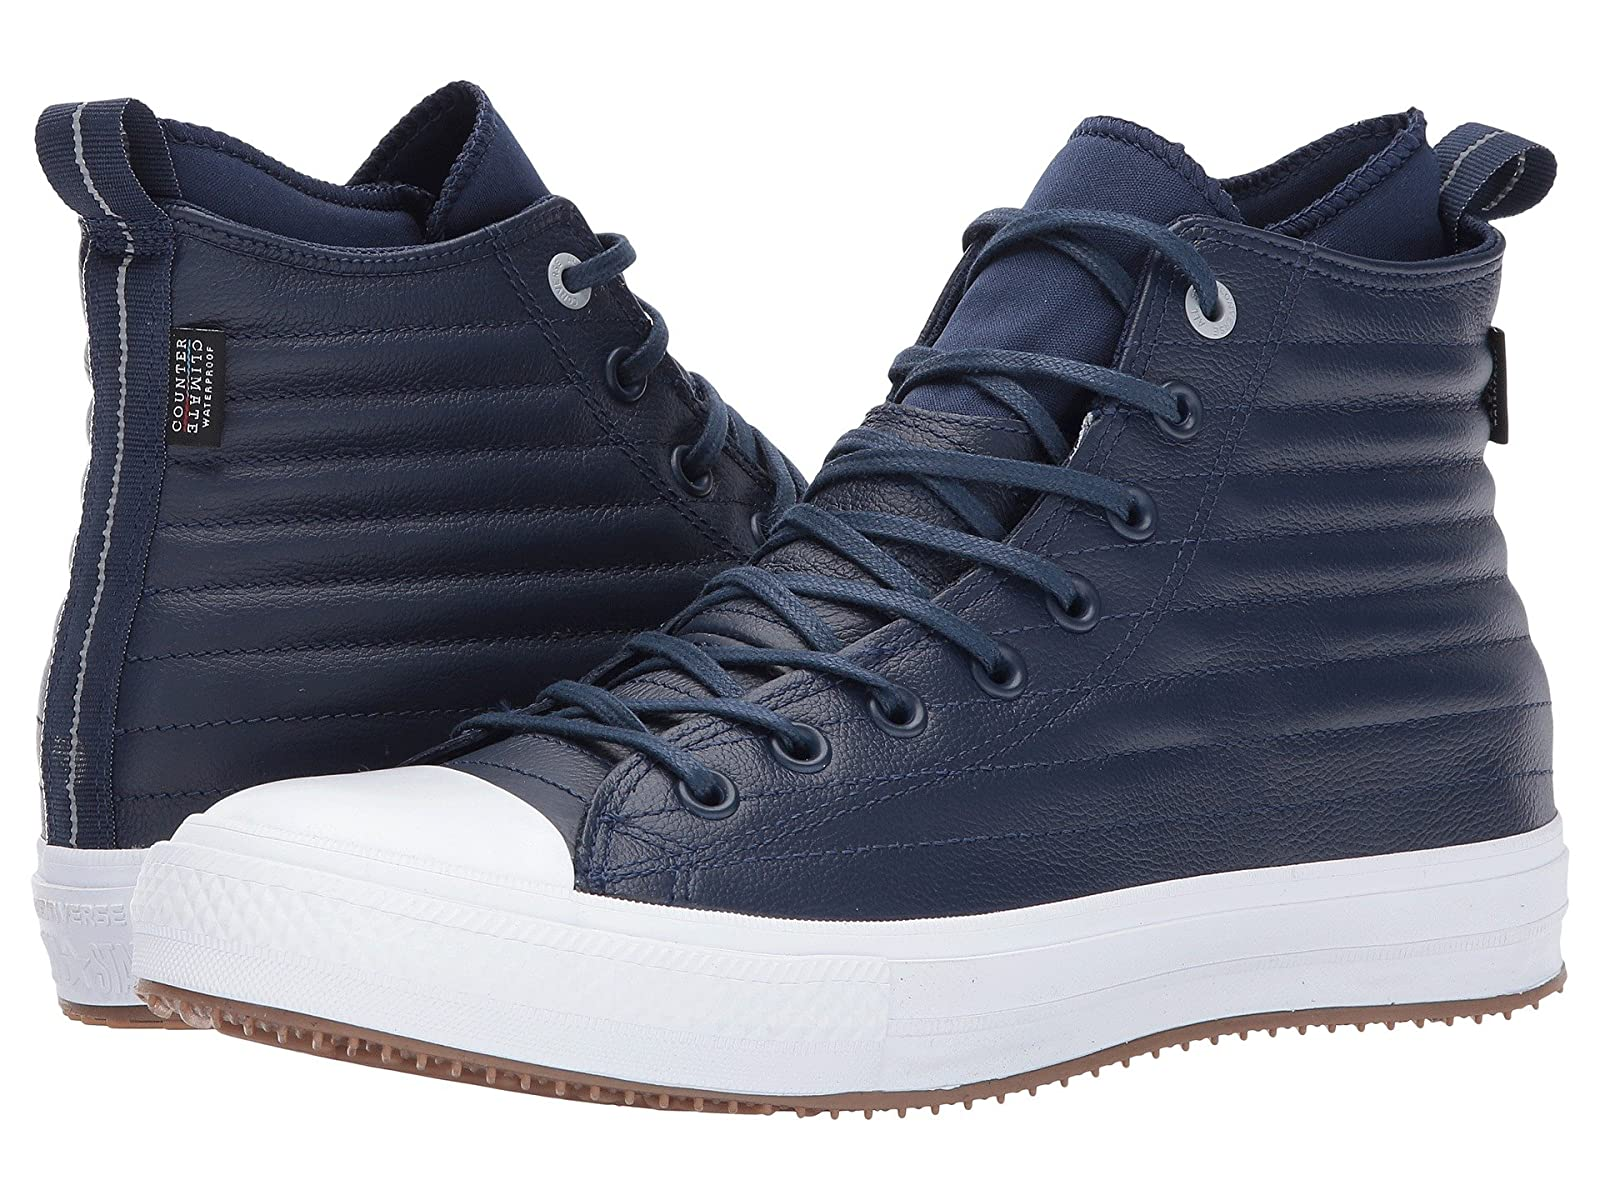 Converse Chuck Taylor All Star WP Boot - HiCheap and distinctive eye-catching shoes